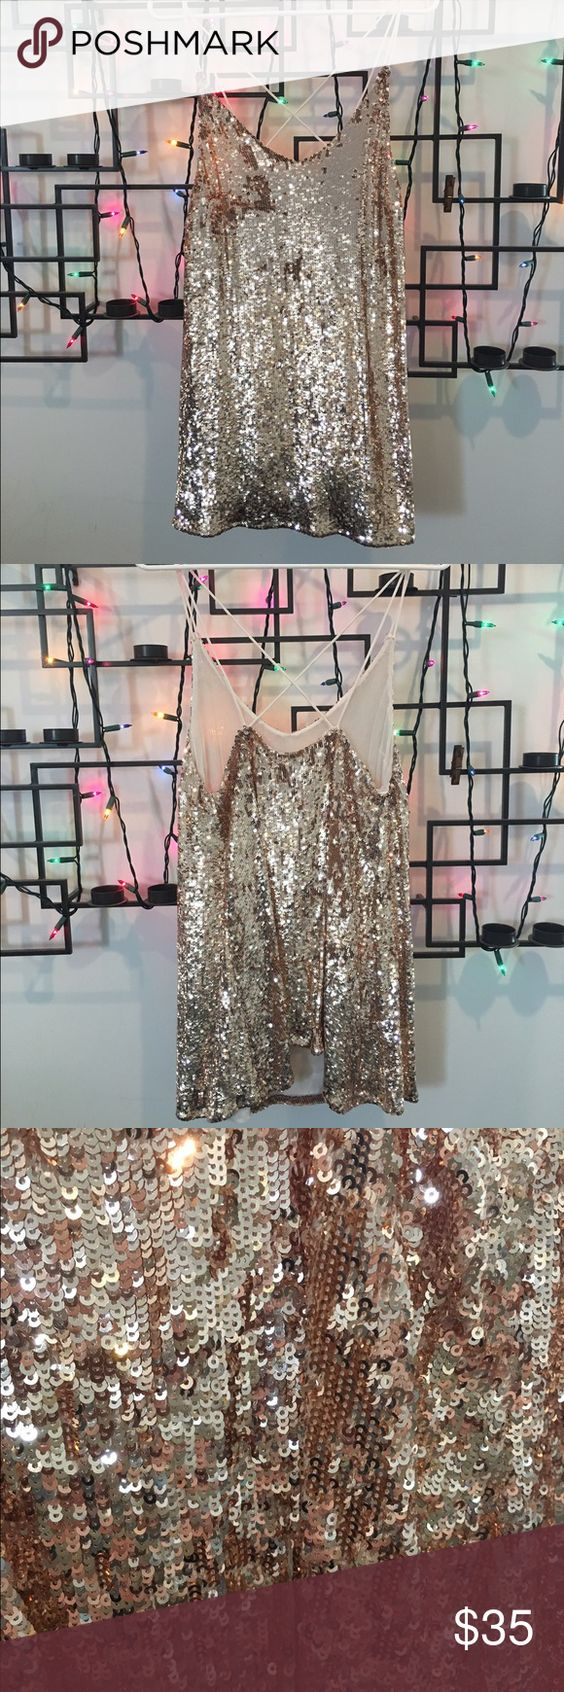 Free People Sequin Dress/Tunic This is a Free people sequin dress/tunic depending how tall you are. It's like a champagne color sequin with a skinny strap that crosses in the back. It's only been once and is in great condition! Free People Dresses Mini